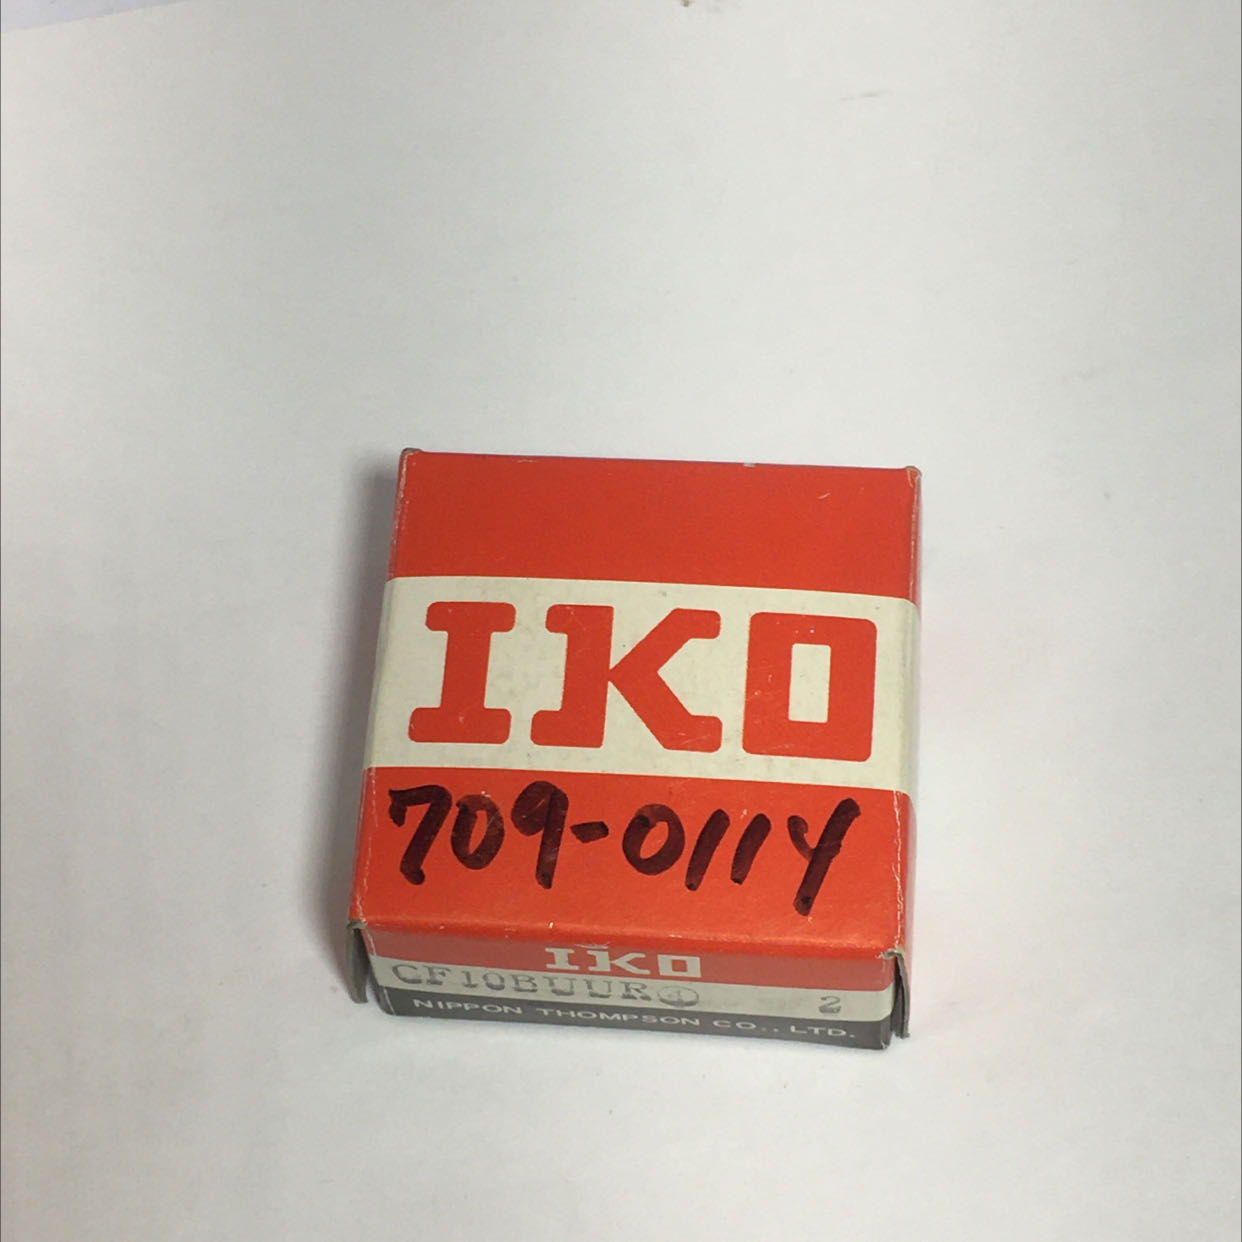 IKO CF10BUUR Cam Follower Lot of 2